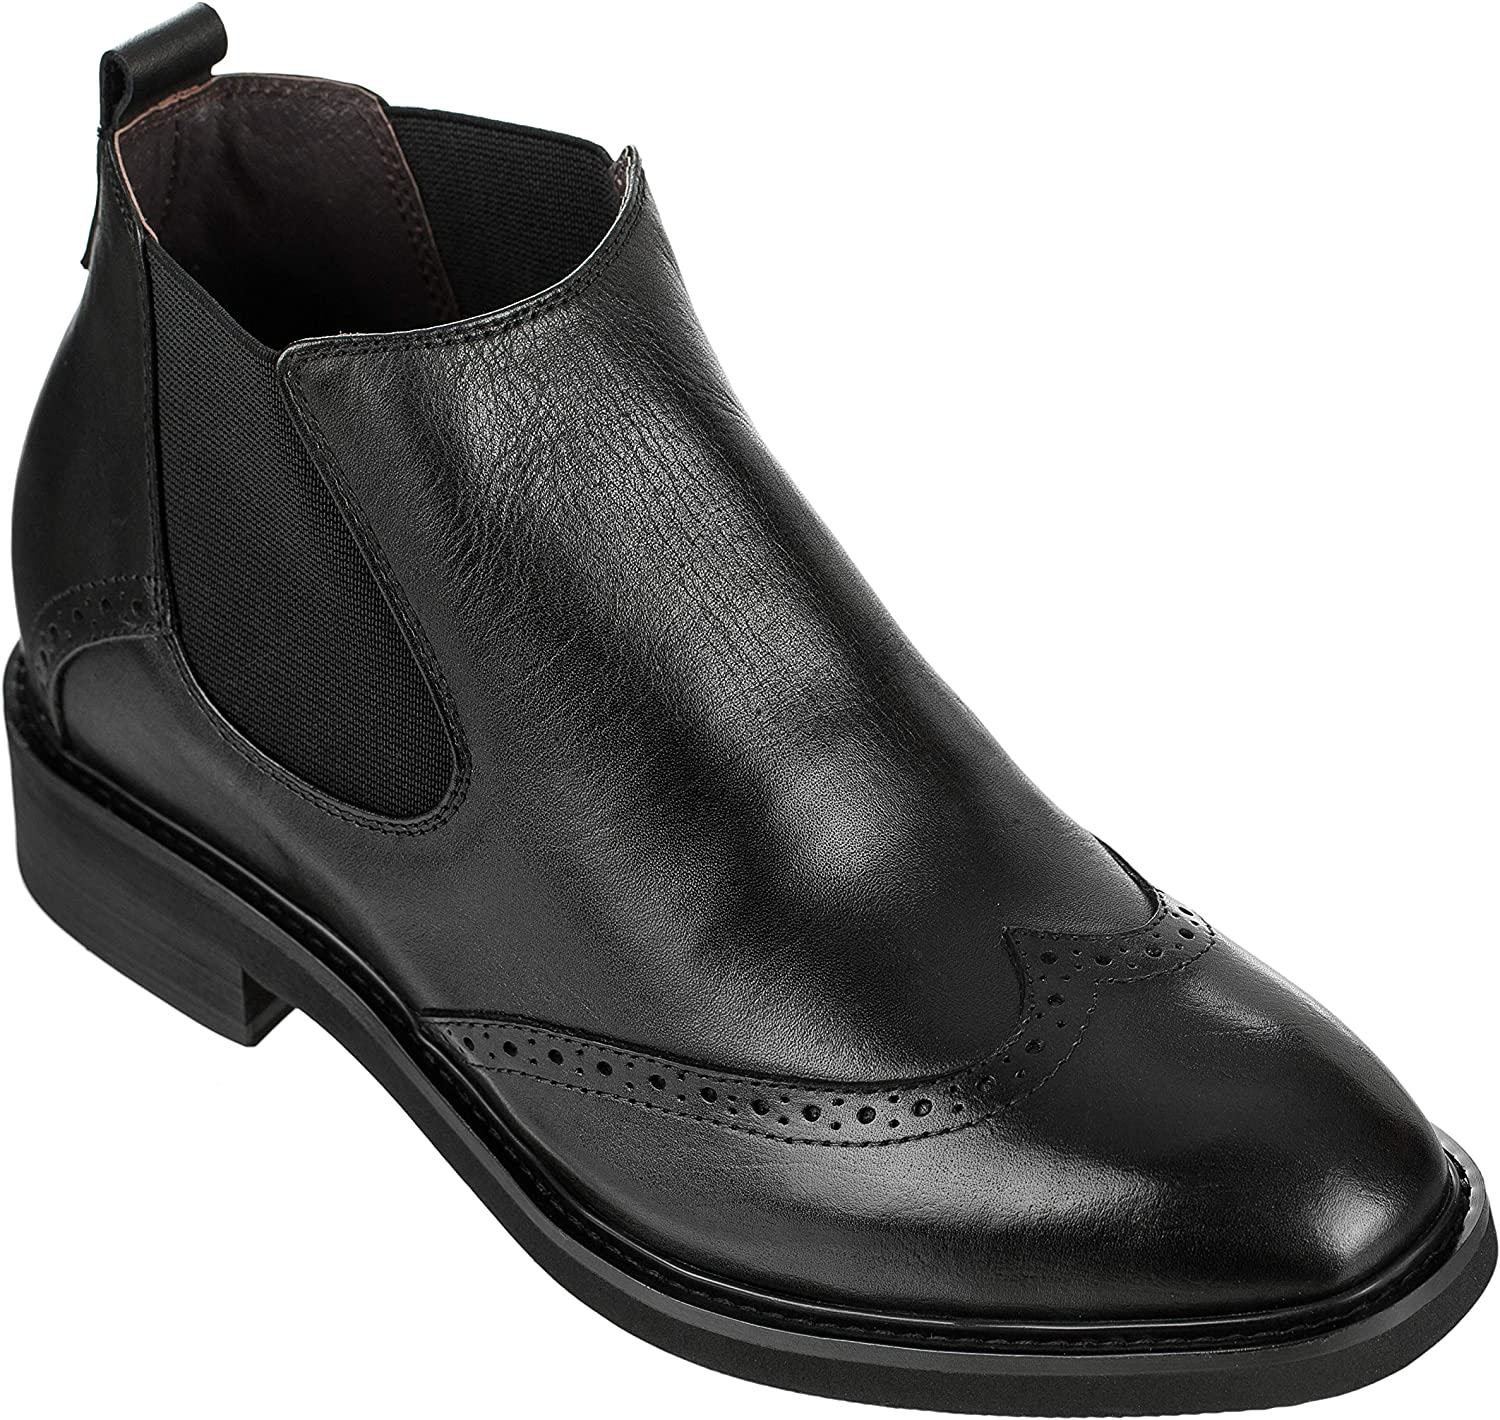 CALDEN - K28802 - 3 Inches Taller - Height Increasing Elevator shoes-Black Wing-tip Ankle Boots